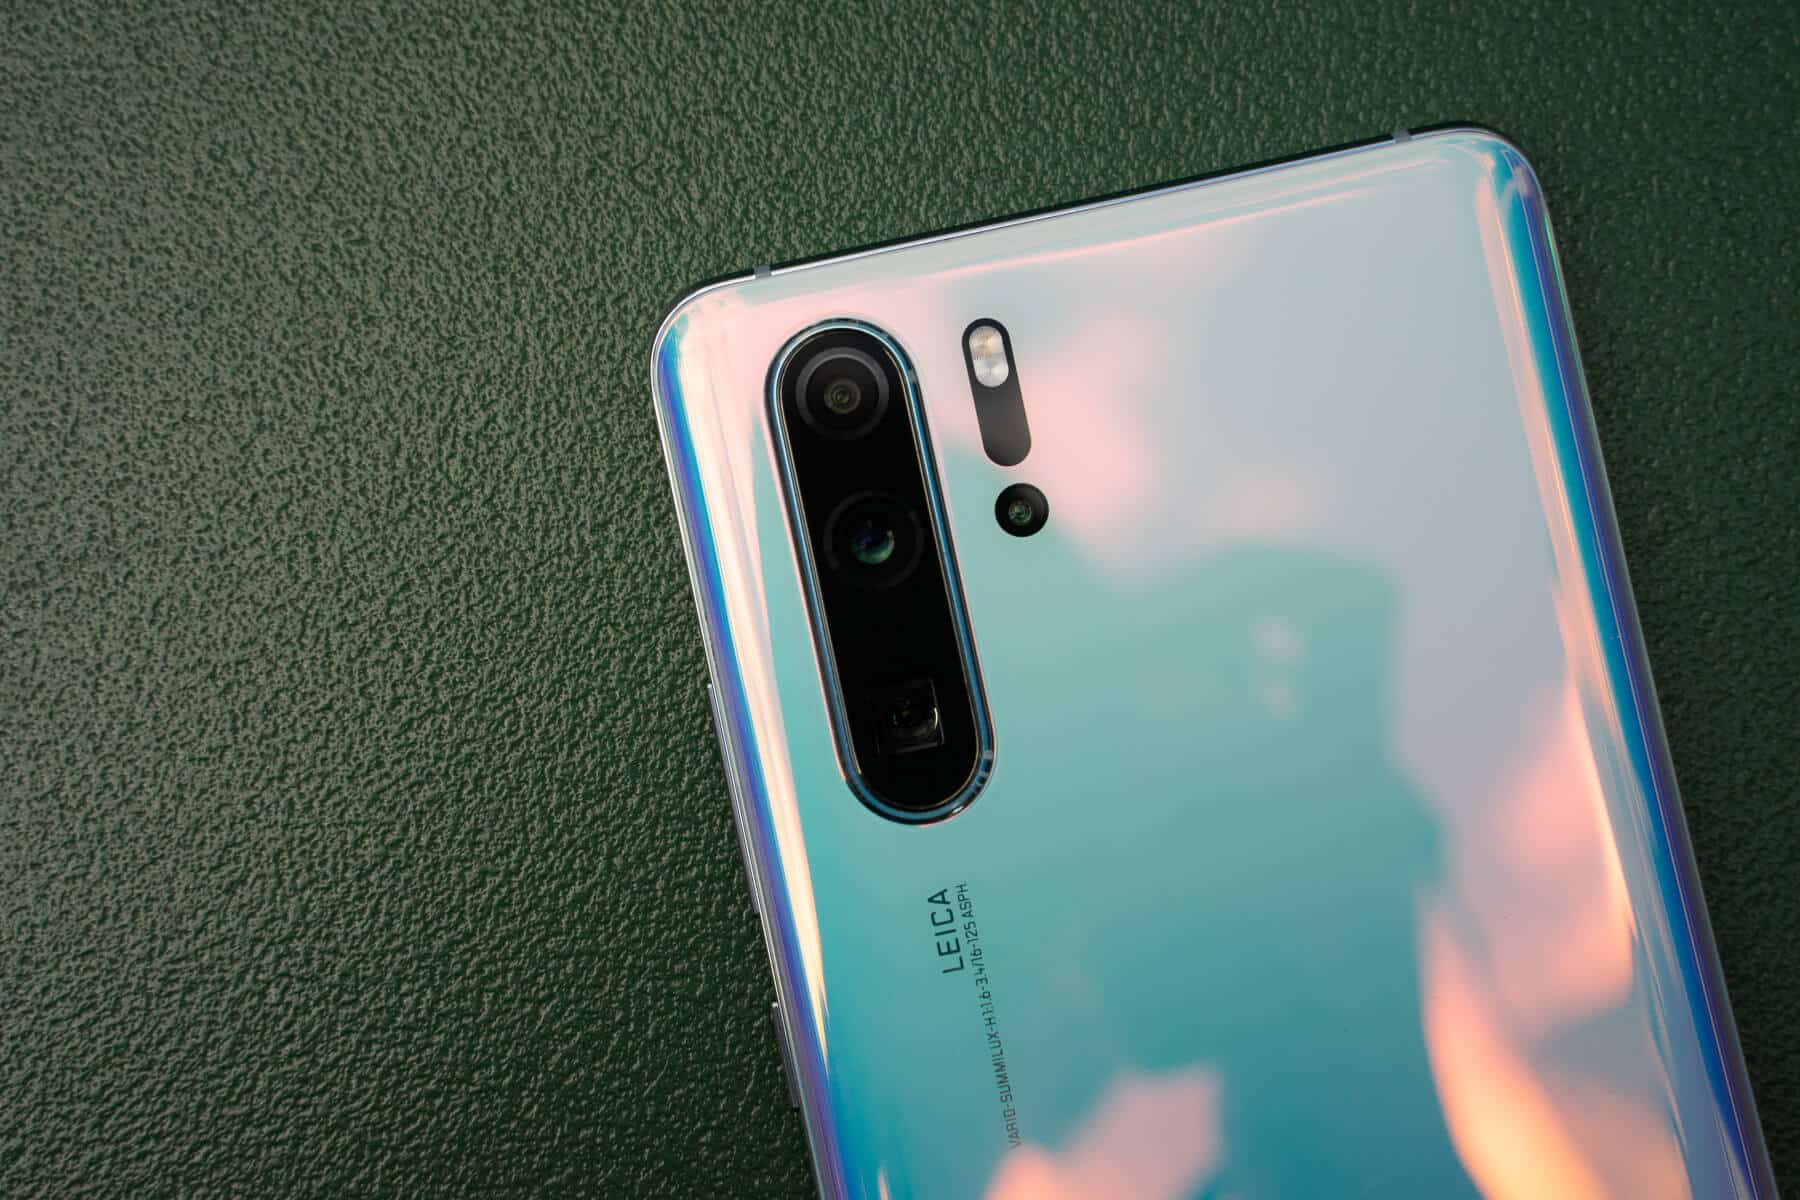 Huawei may bring P30 Pro New Edition complete with Google apps & services